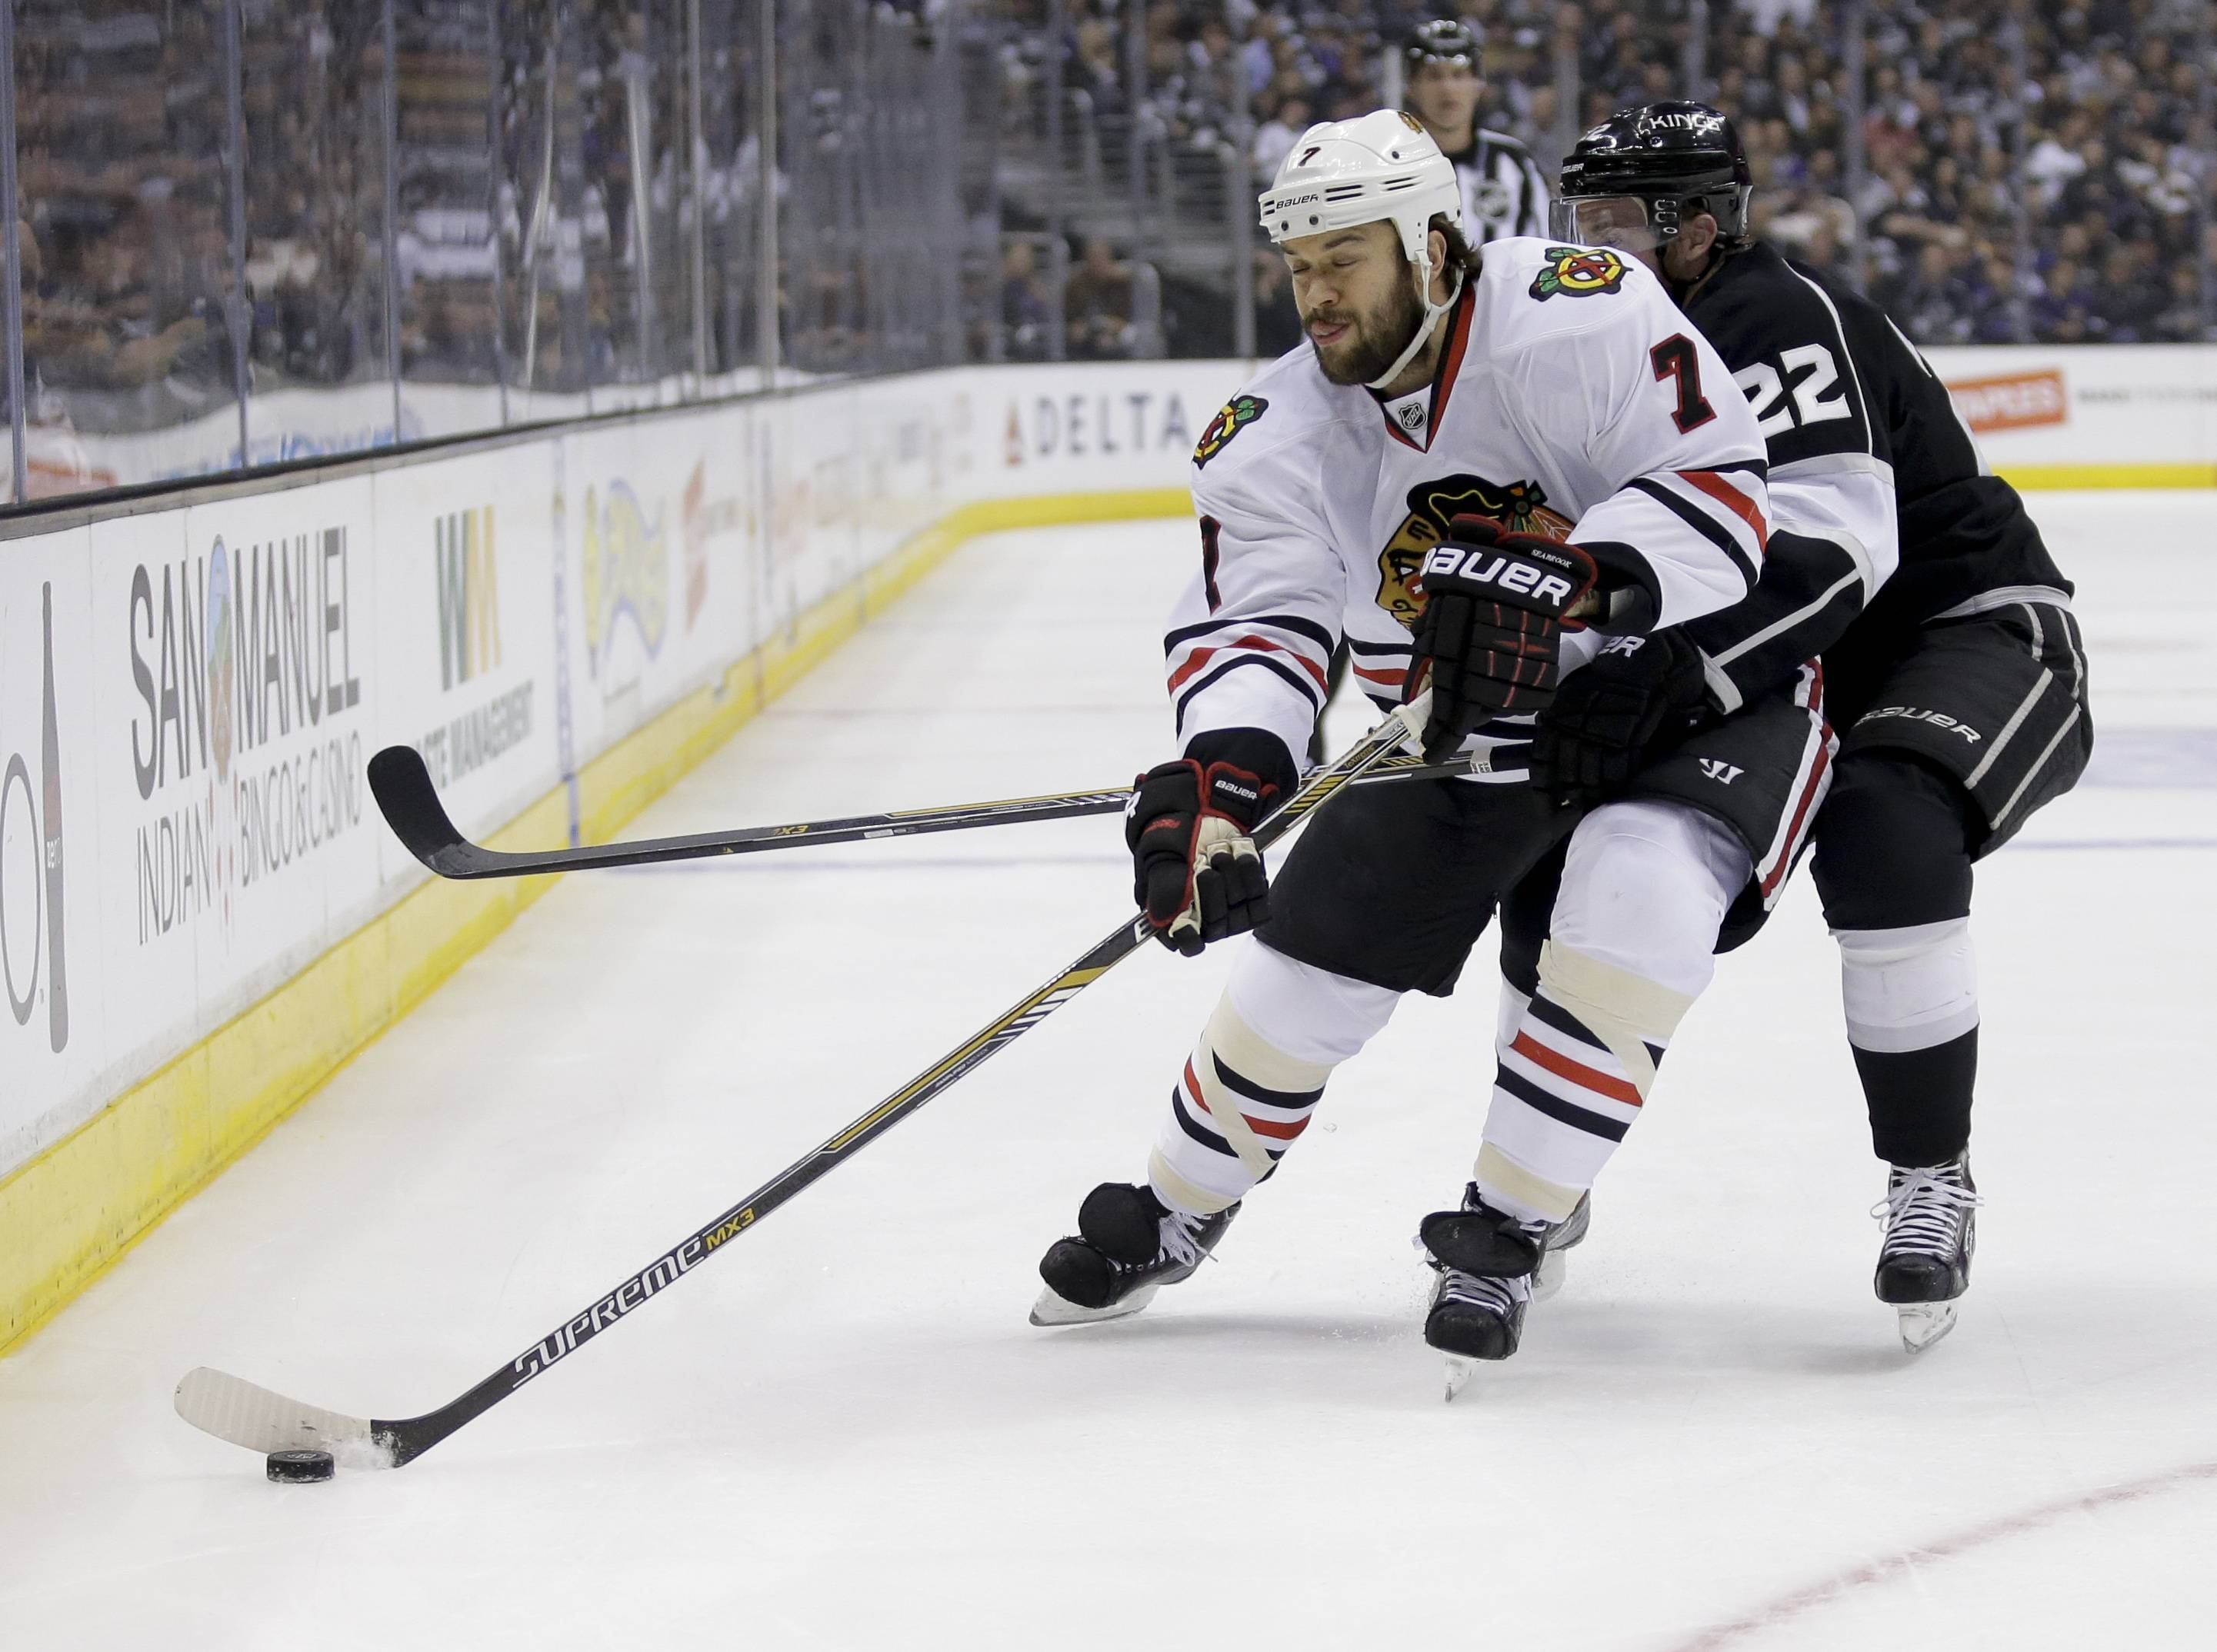 Chicago Blackhawks defenseman Brent Seabrook, left, competes against Los Angeles Kings center Trevor Lewis for the puck during the first period.